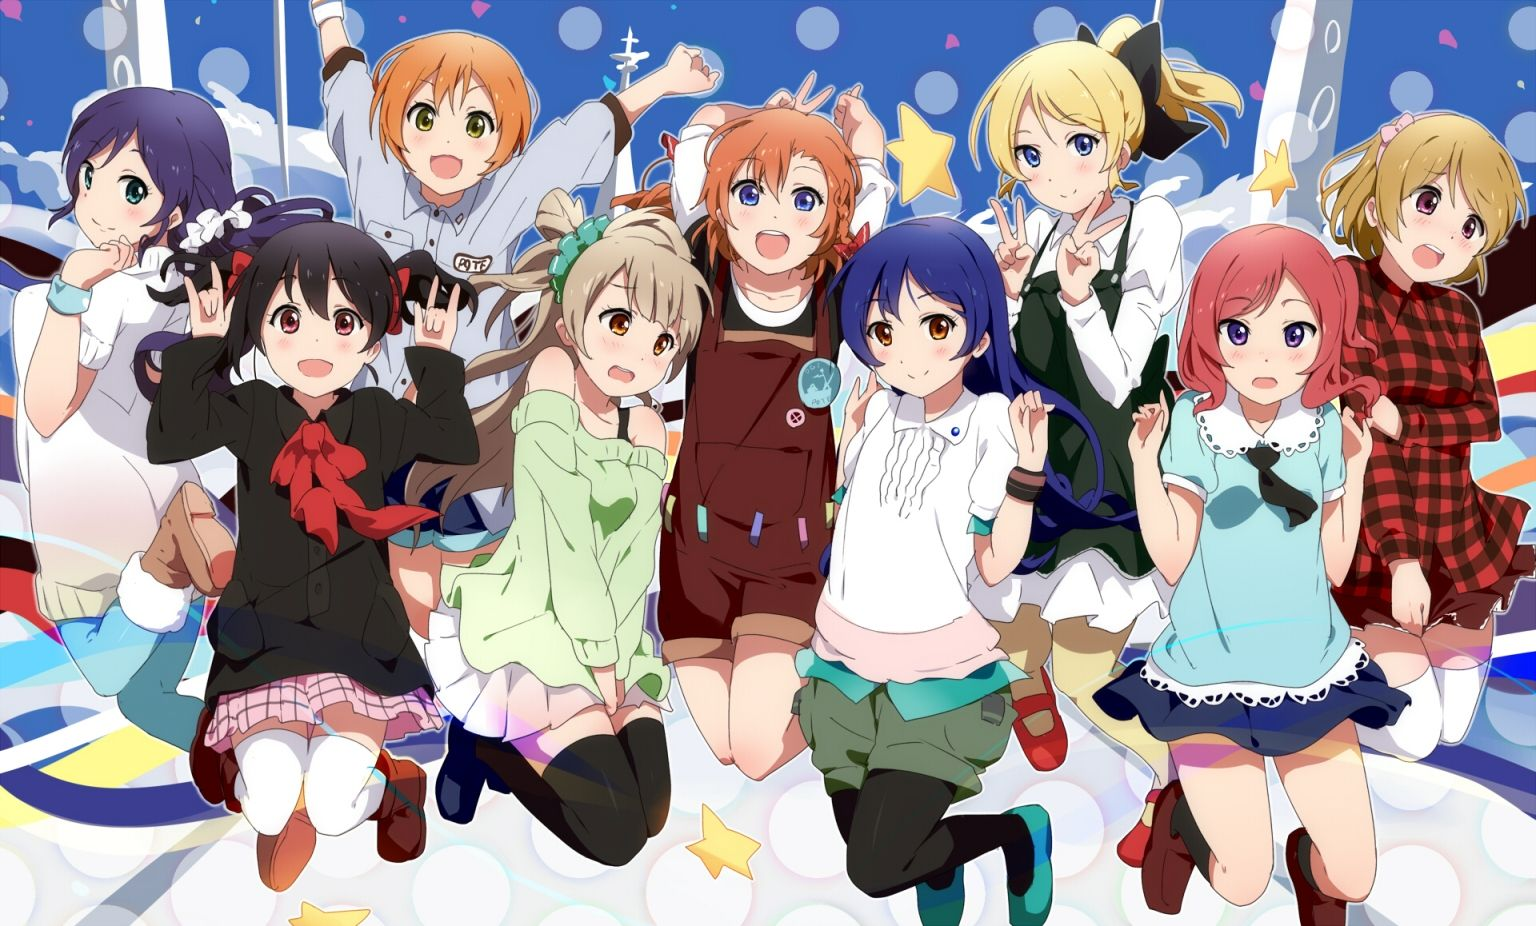 Pin on Love Live! School Idol Project